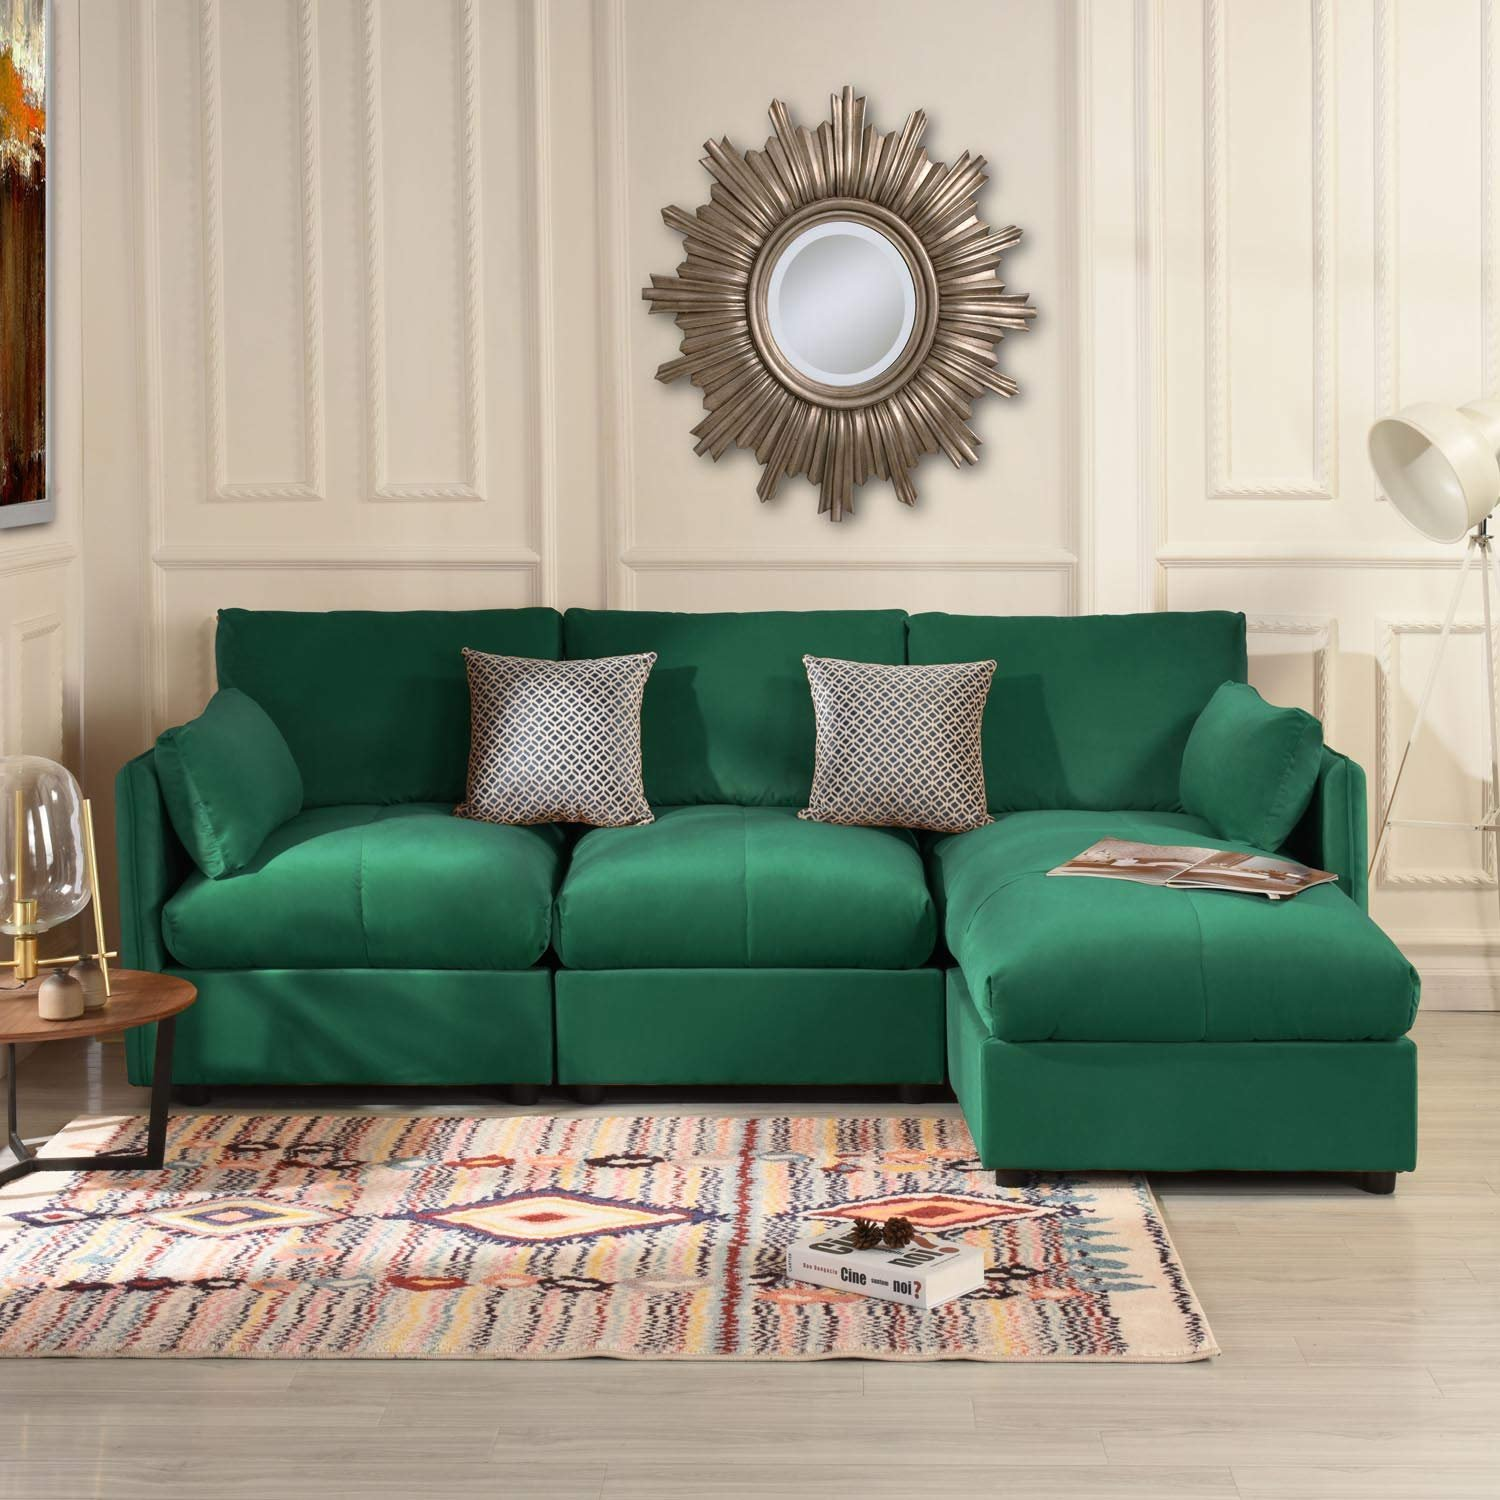 Details about Modern Living Room Velvet L Shape Couch Sectional Sofa Right  Facing Chaise Green